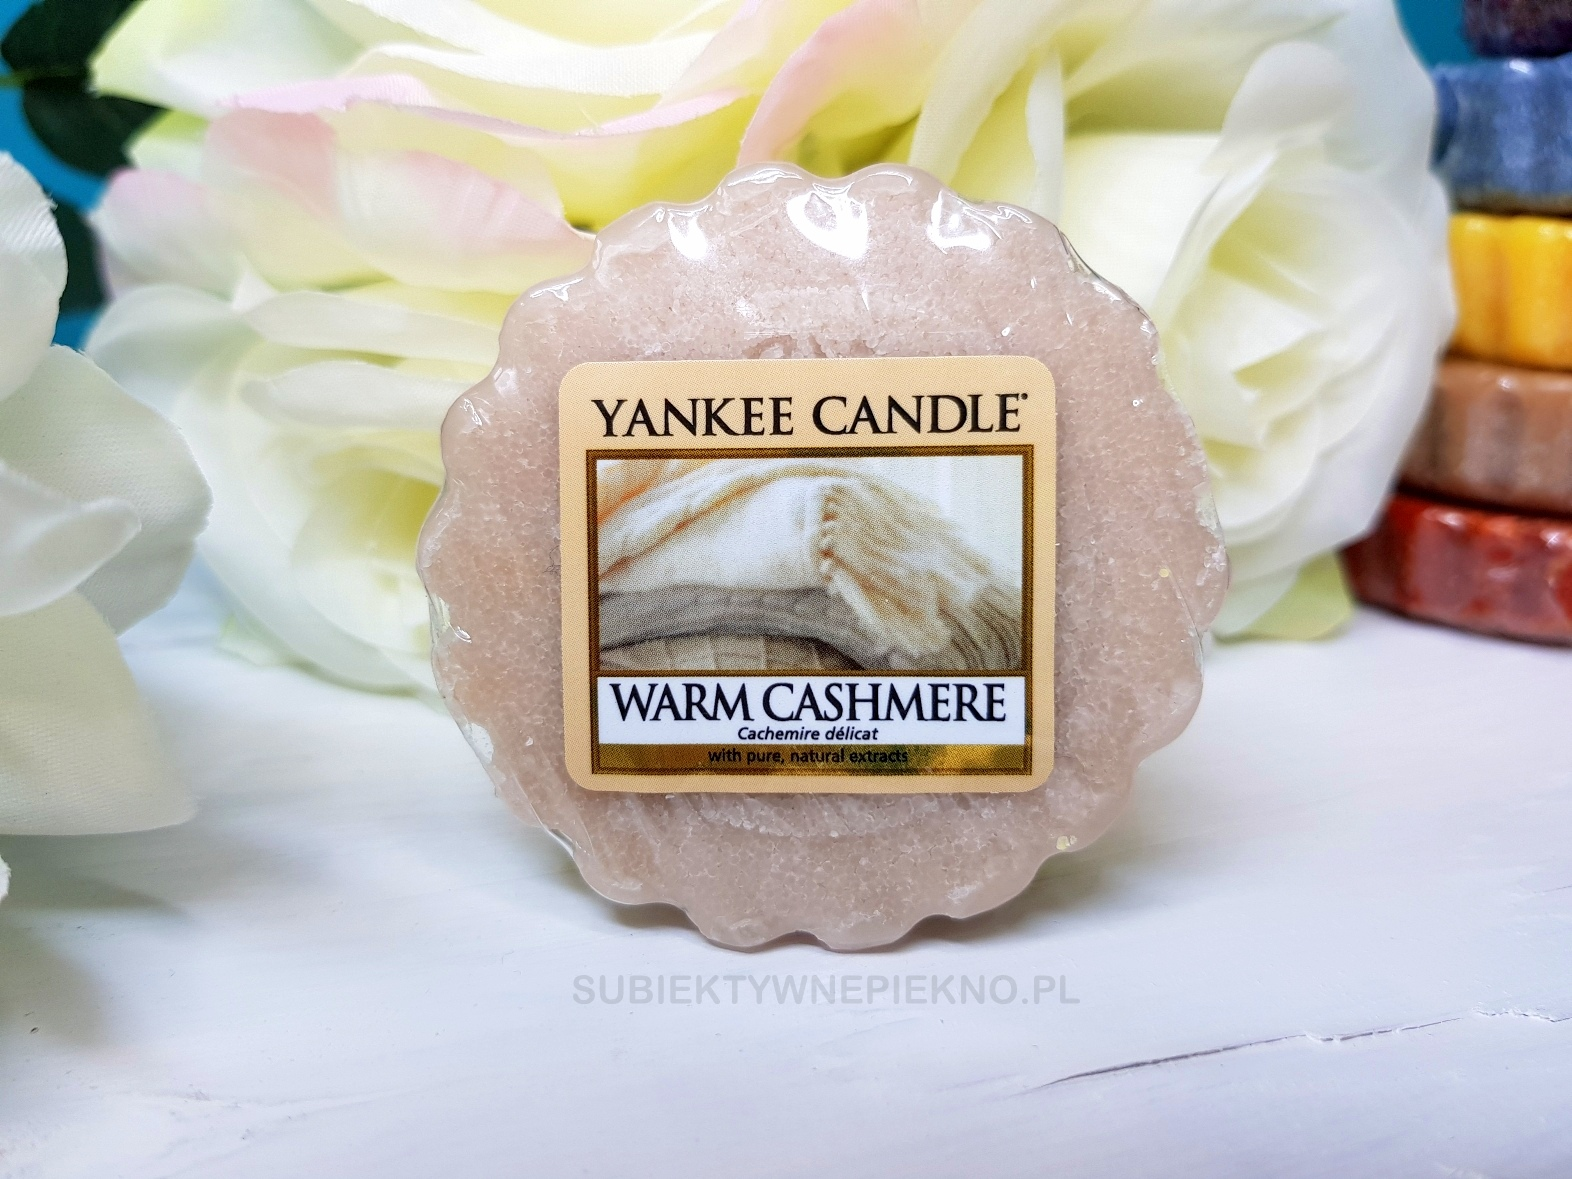 wosk zapachowy Warm Cashmere Yankee Candle Q3 2017 opinie blog